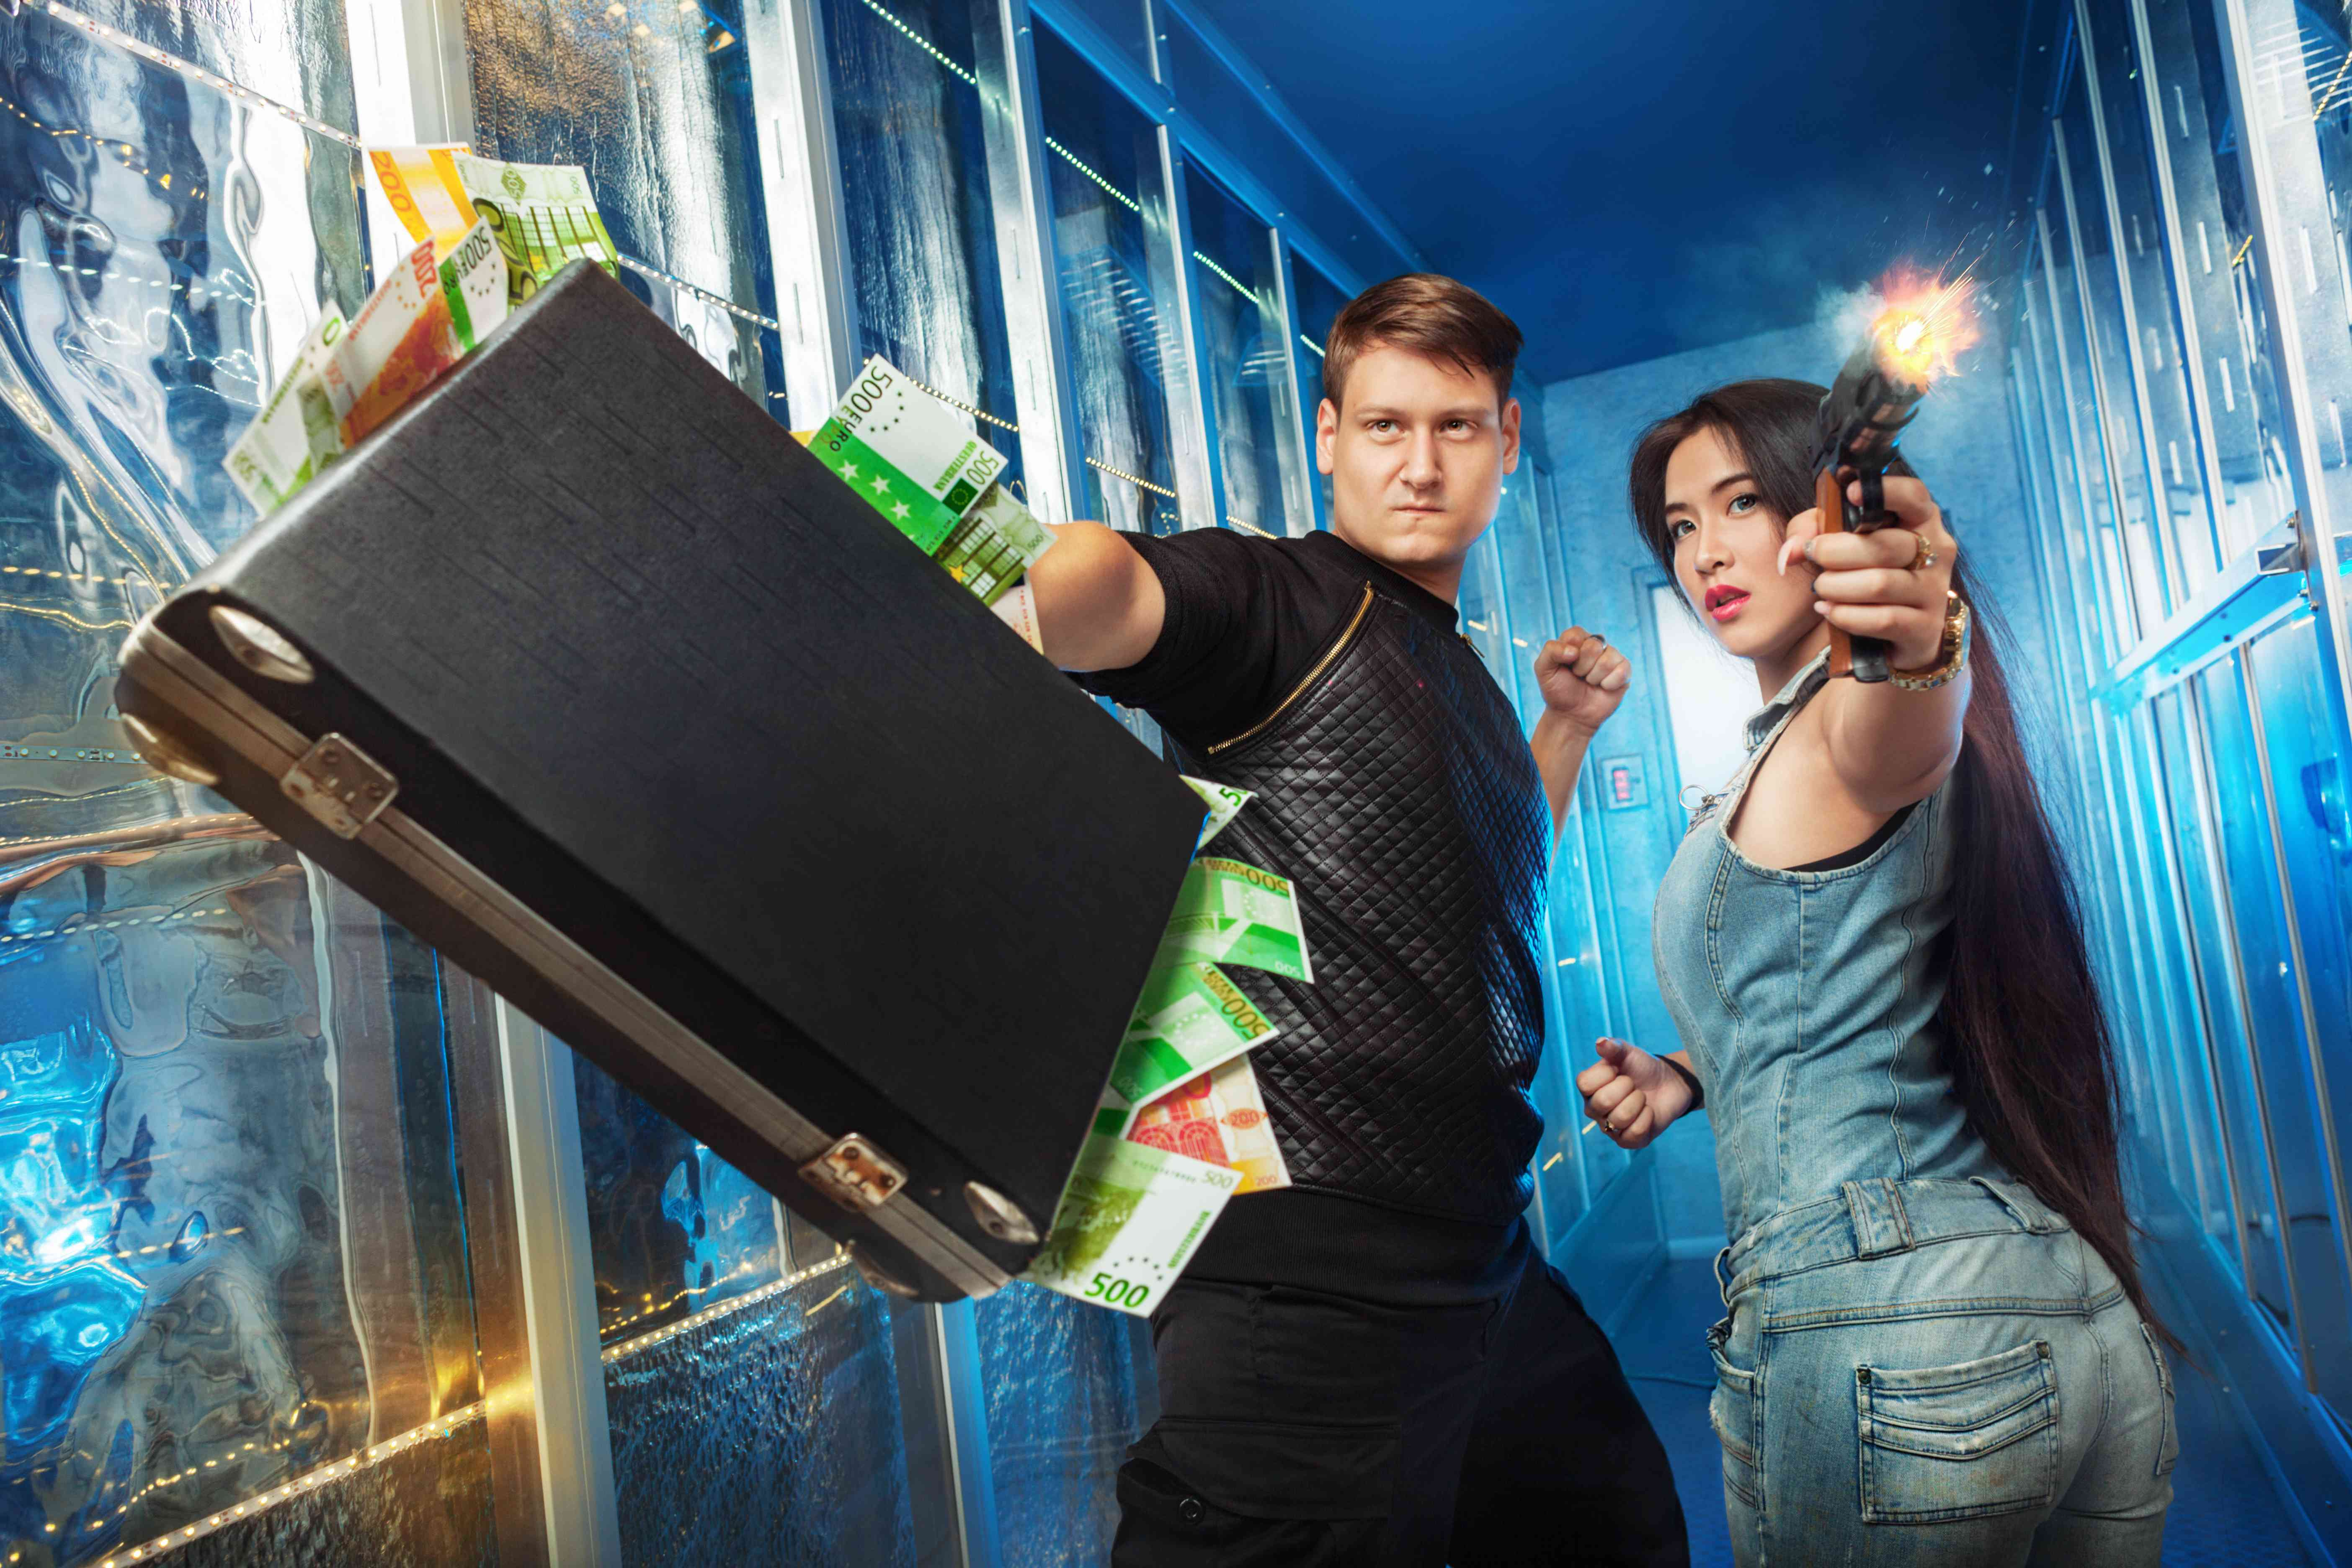 QUESTERLAND – Escape games in Prague full of adrenaline by